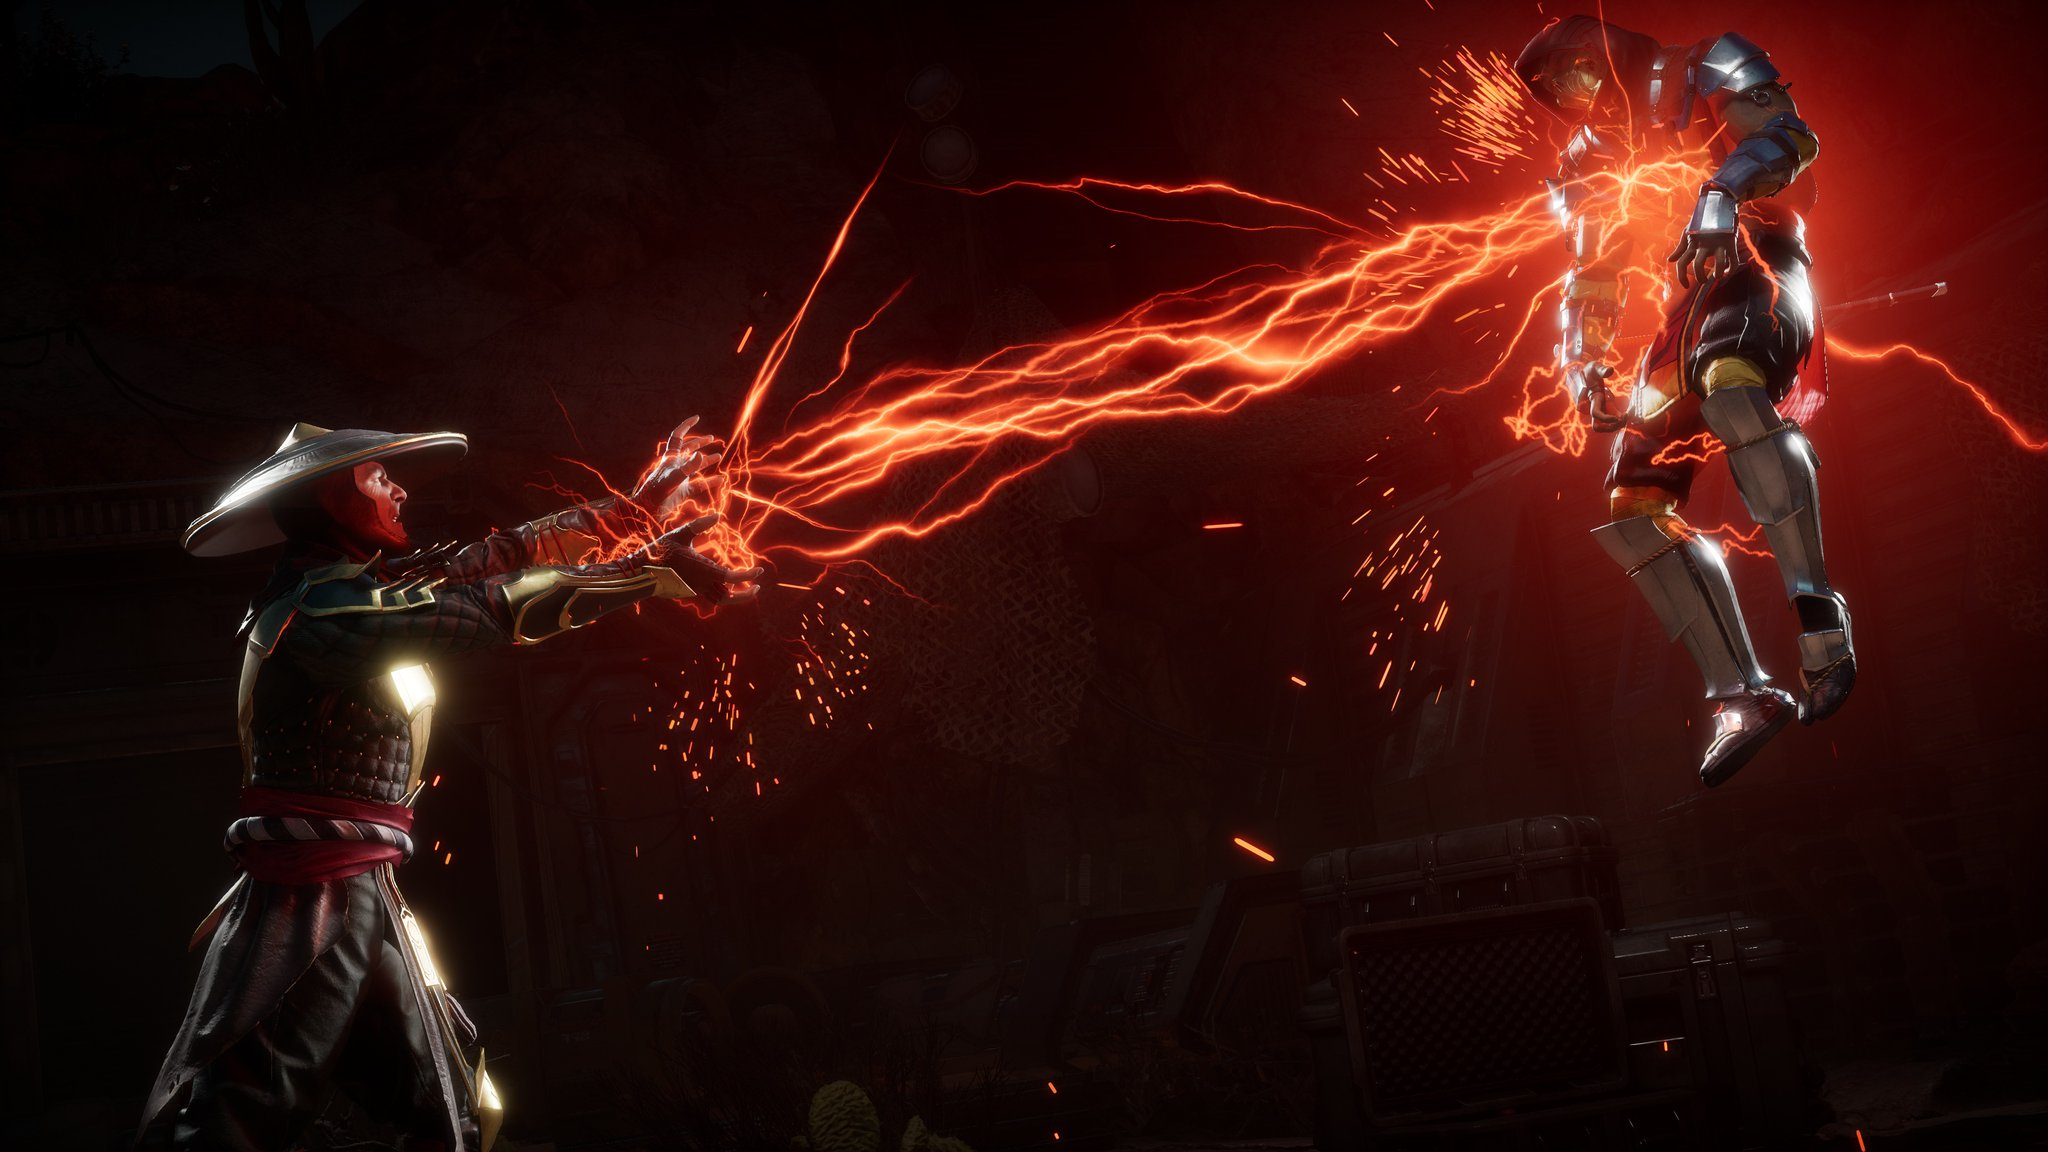 Mortal Kombat 11 to run at 60fps on Switch, Ed Boon says the